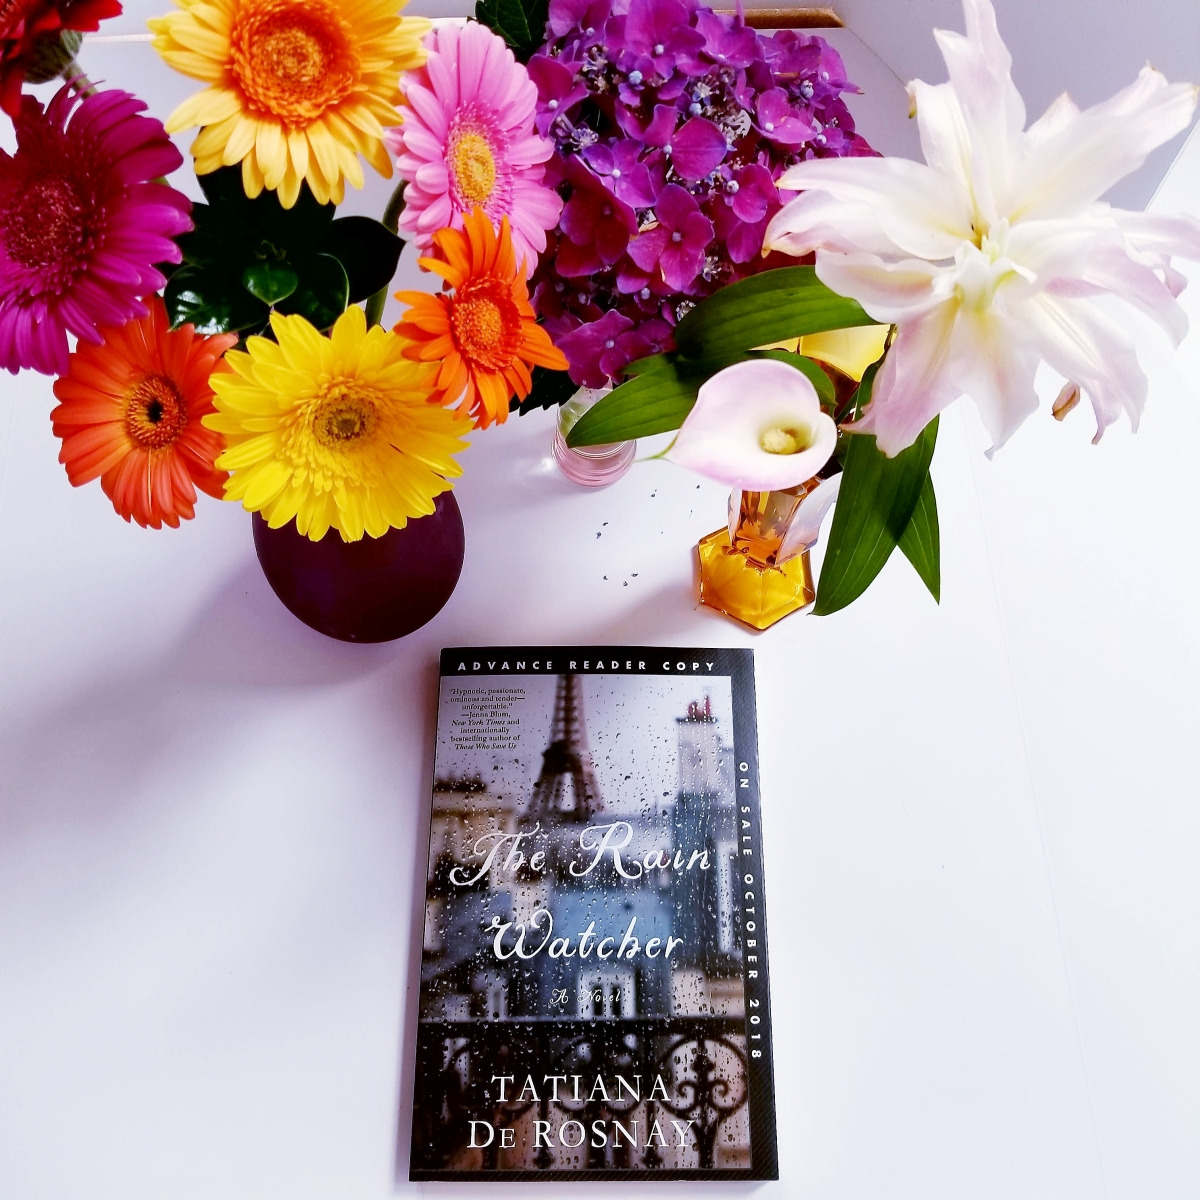 First Line Fridays: The Rain Watcher by Tatiana de Rosnay #firstlinefridays #tarheelreader @thrrain @tatianaderosnay #6bookbestiesrainwatcher @stmartinspress #therainwatcher